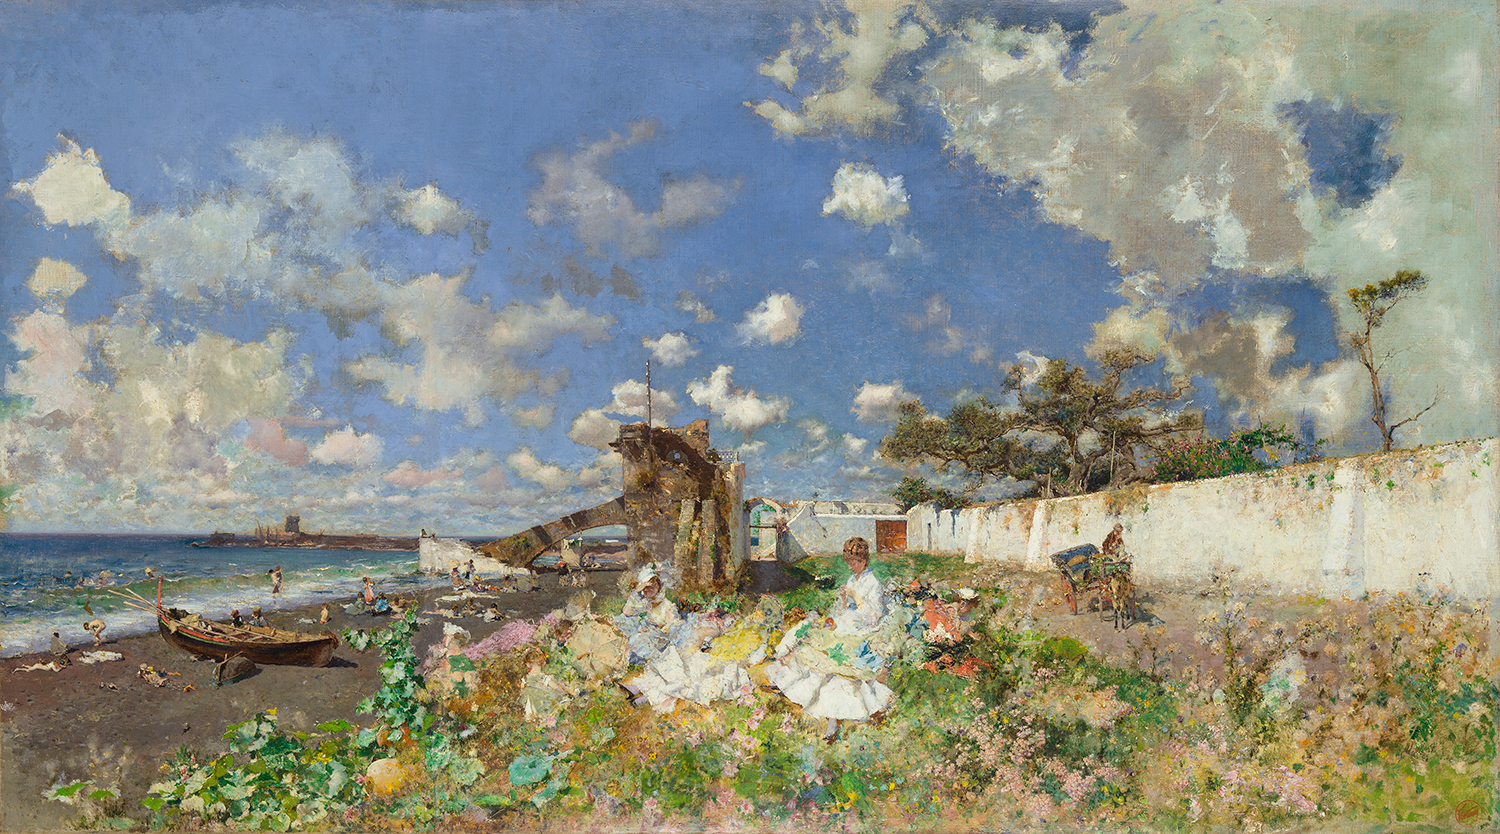 Mariano Fortuny y Marsal (Spanish, 1838–1874), Beach at Portici, 1874. Oil on canvas, 27 x 51 ¼ in. (68.6 x 130.2 cm). Meadows Museum, SMU, Dallas.